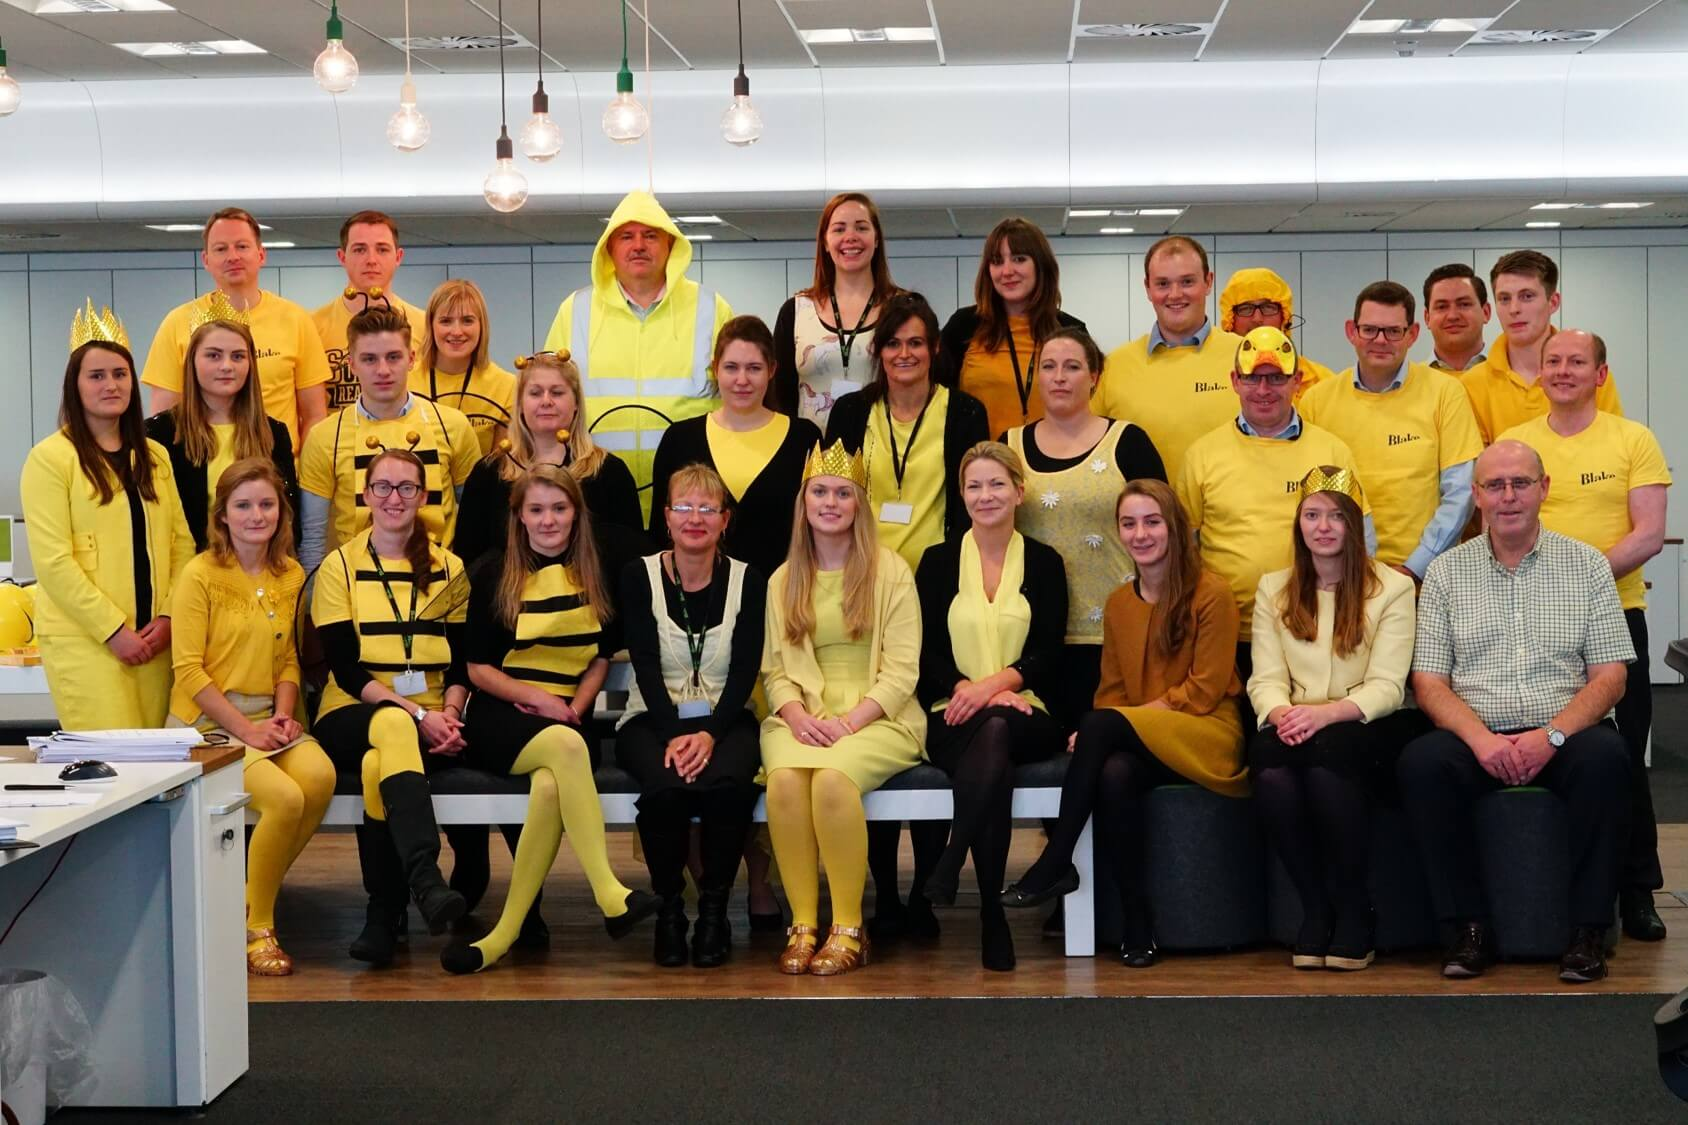 Dare to wear yellow day!